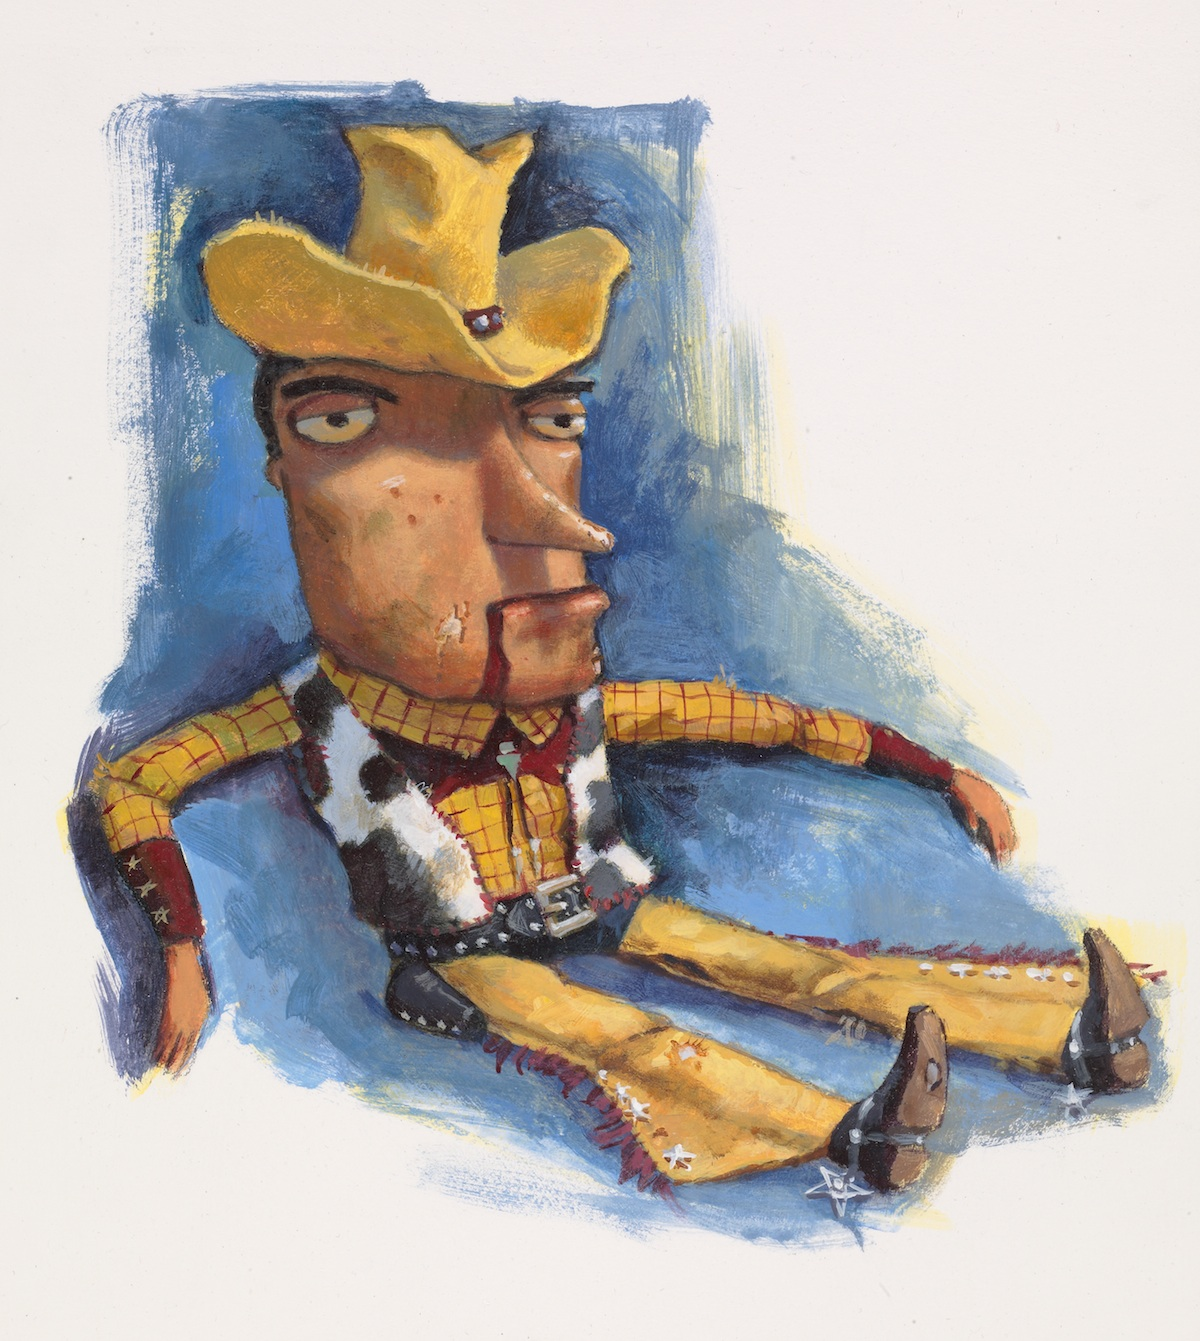 Woody drawn by Steve Johnson and Lou Fancher